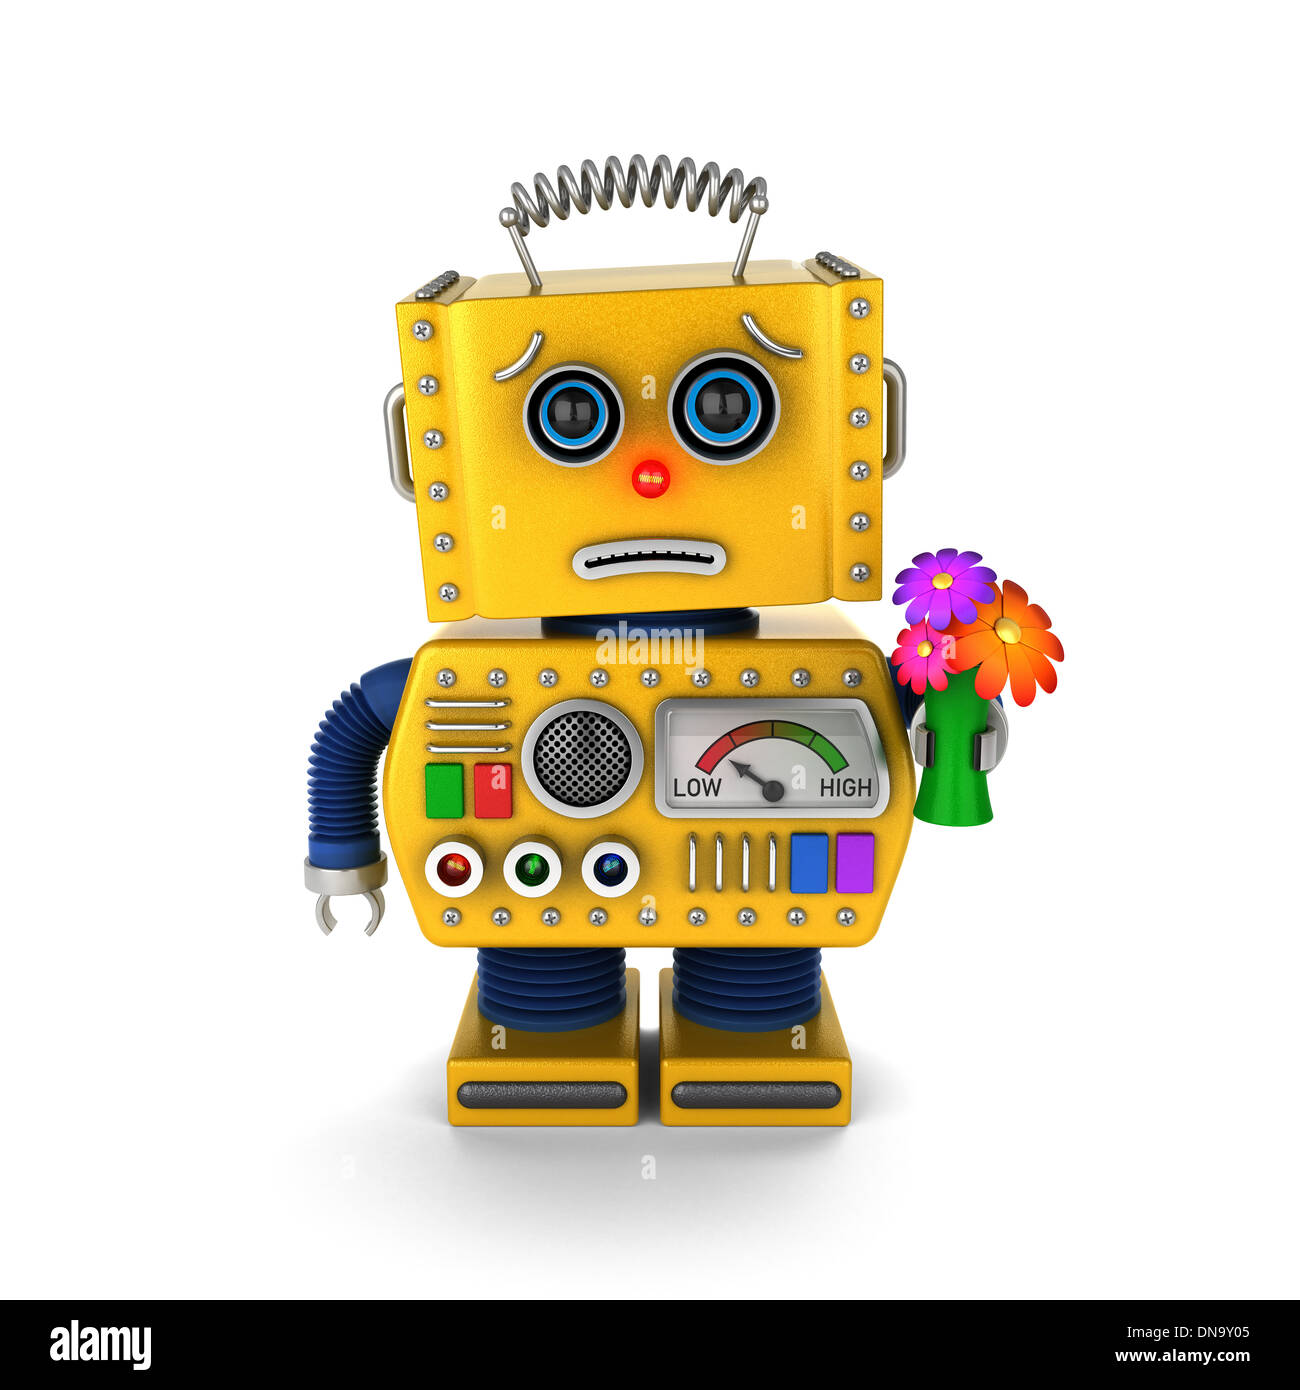 Cute vintage toy robot - Stock Image